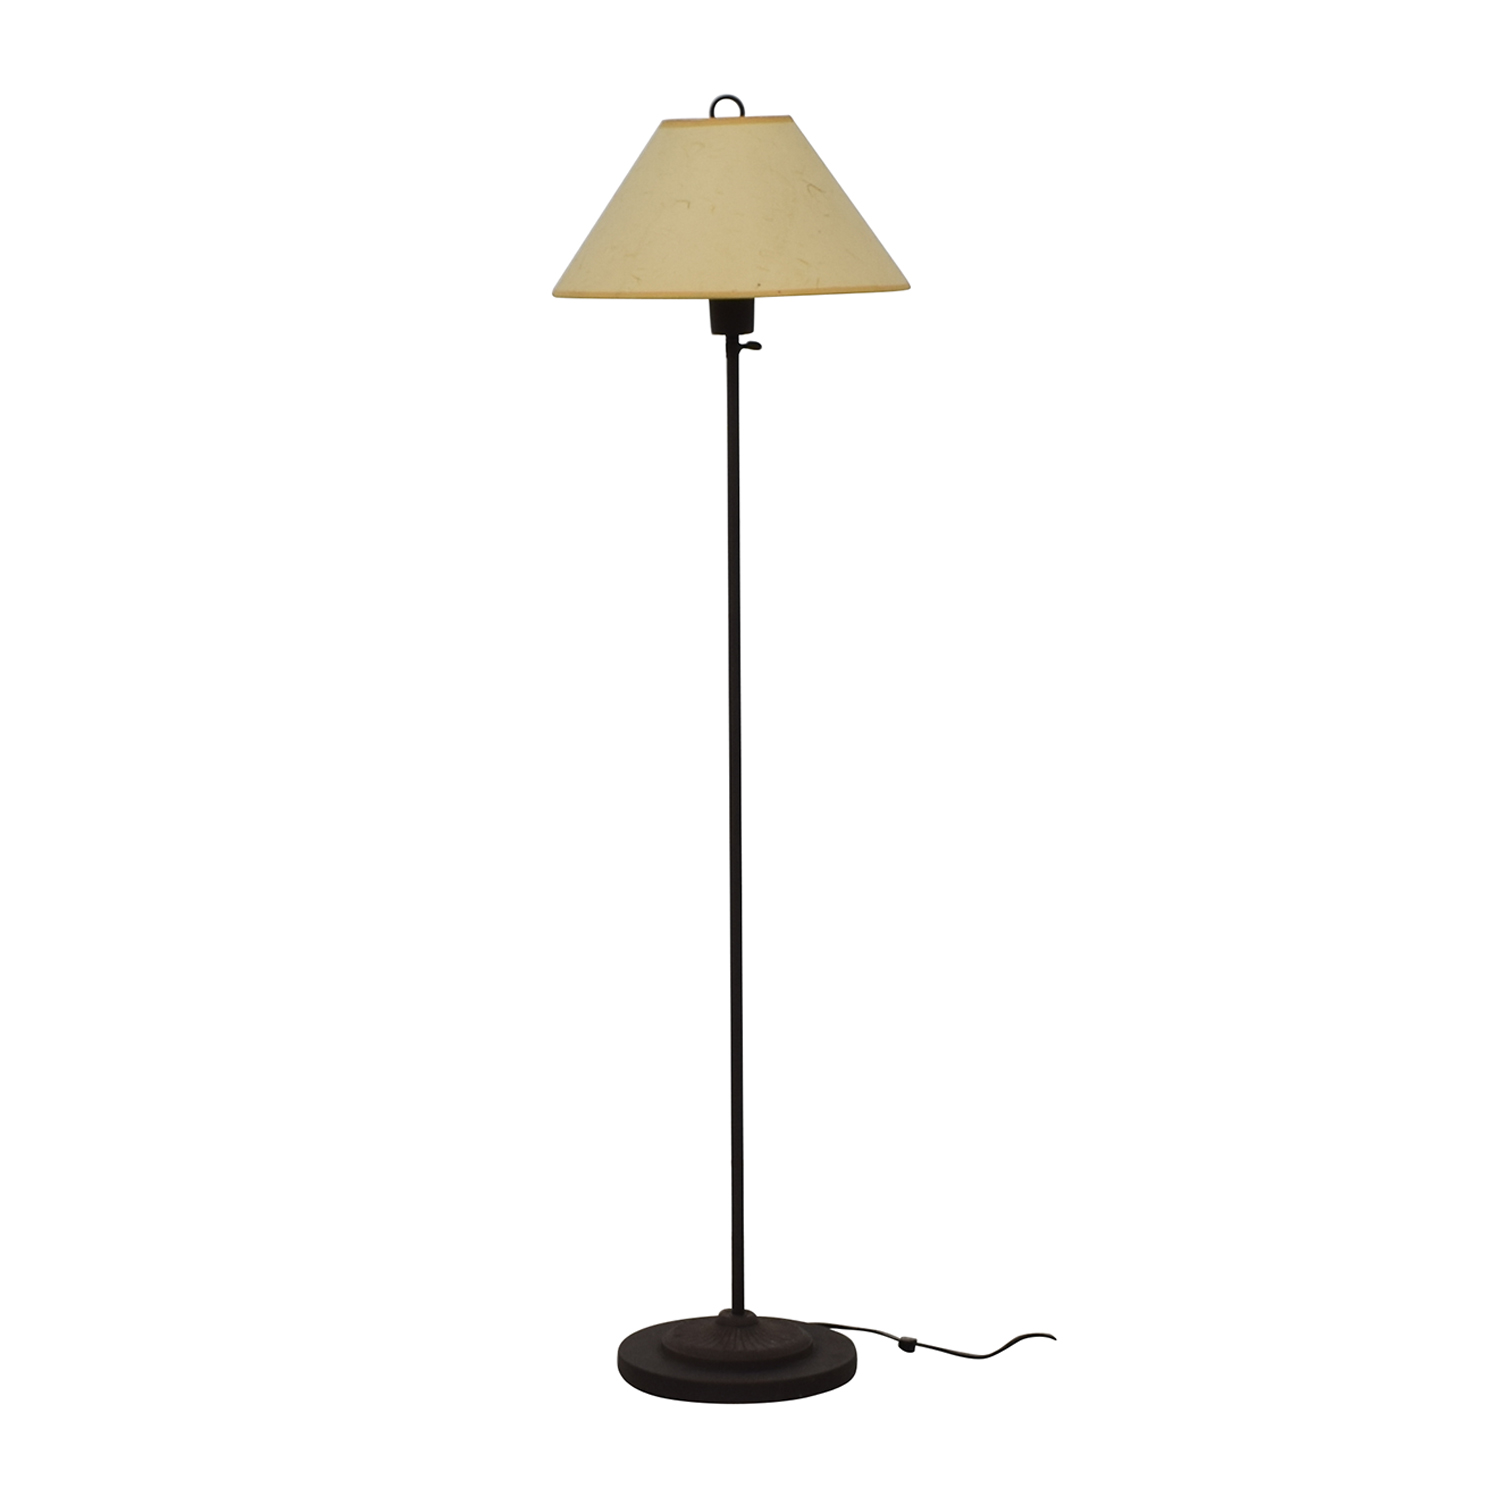 Pottery Barn Pottery Barn Floor Lamp for sale